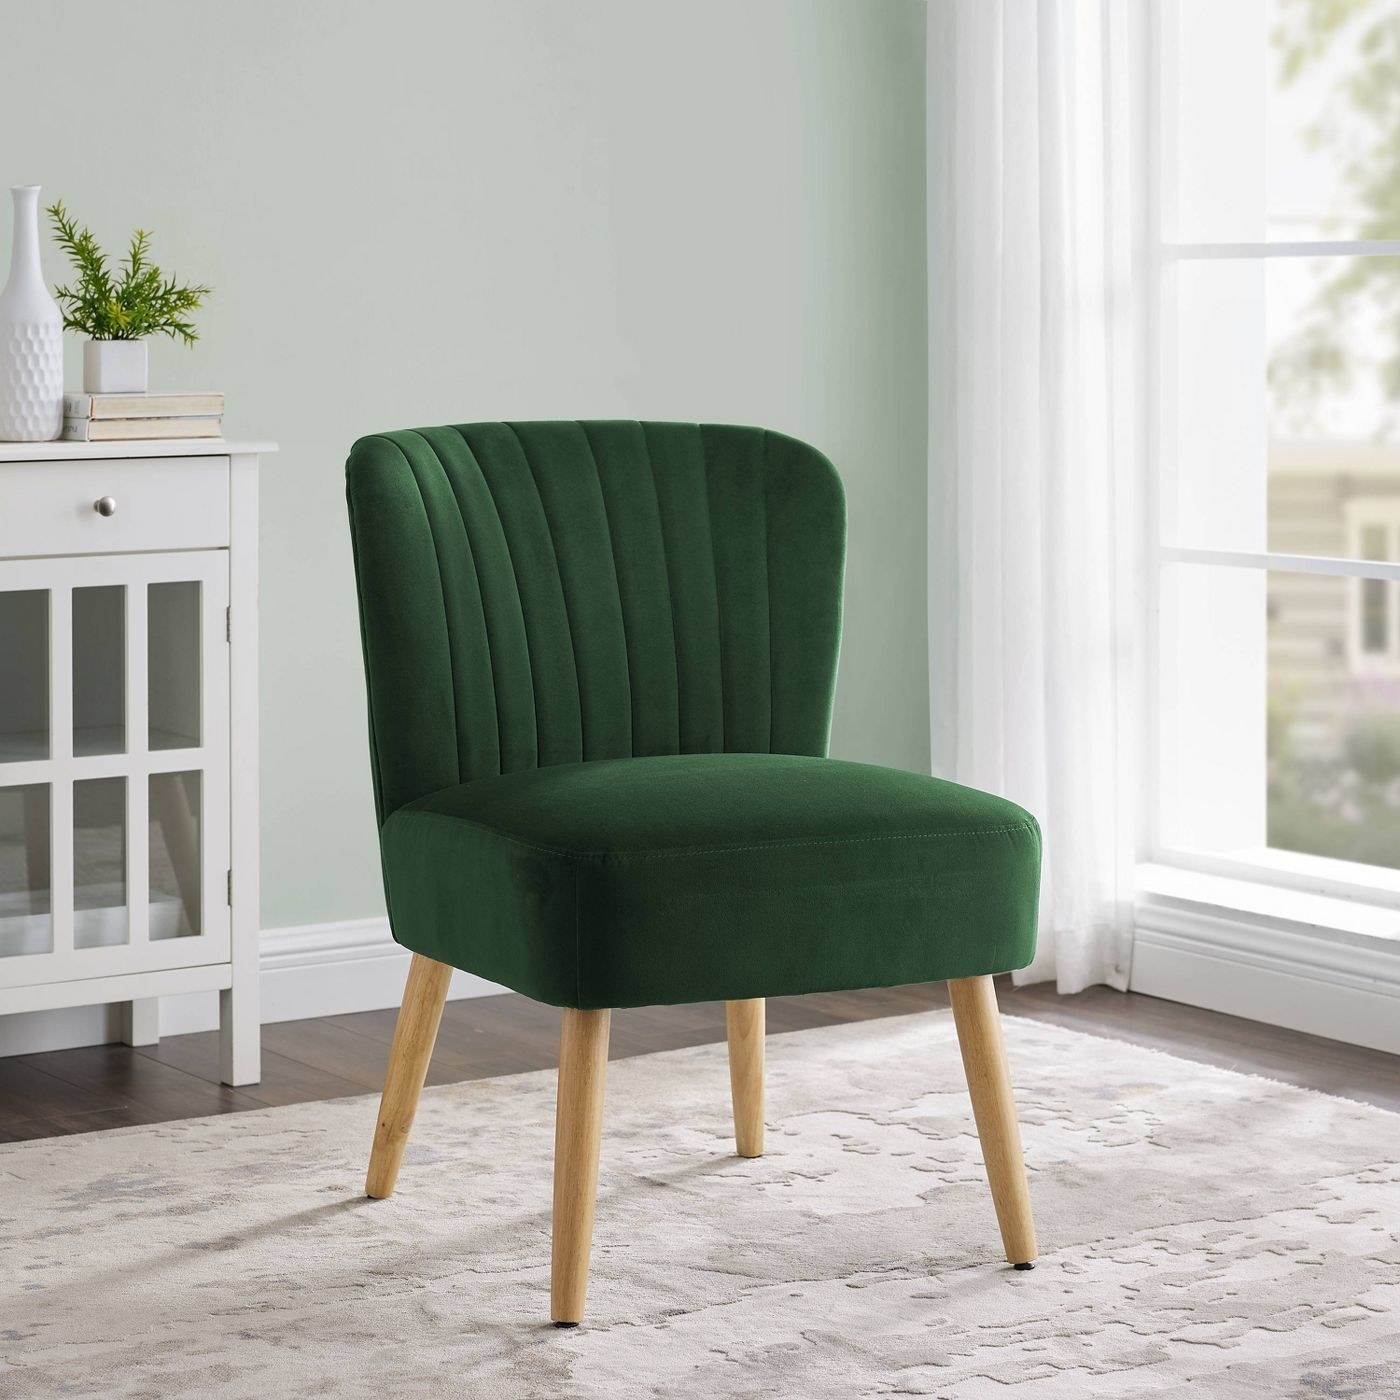 A green velvet chair with wood legs